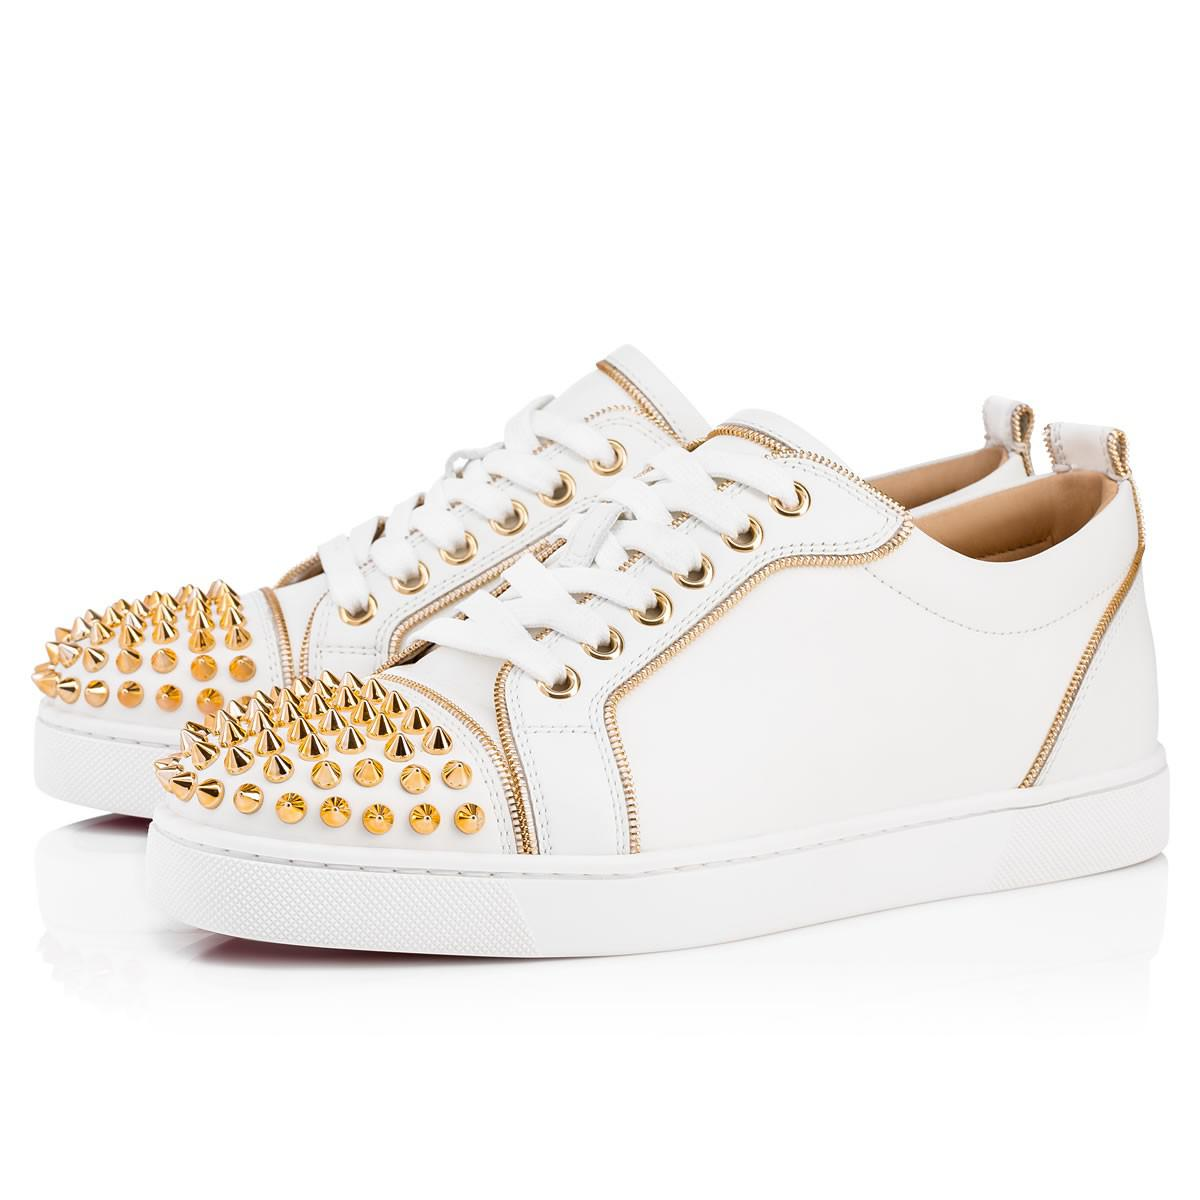 b91b91d9d0a6 Christian Louboutin. Women s Junior Z Woman Spikes Calf Latte gold Calfskin